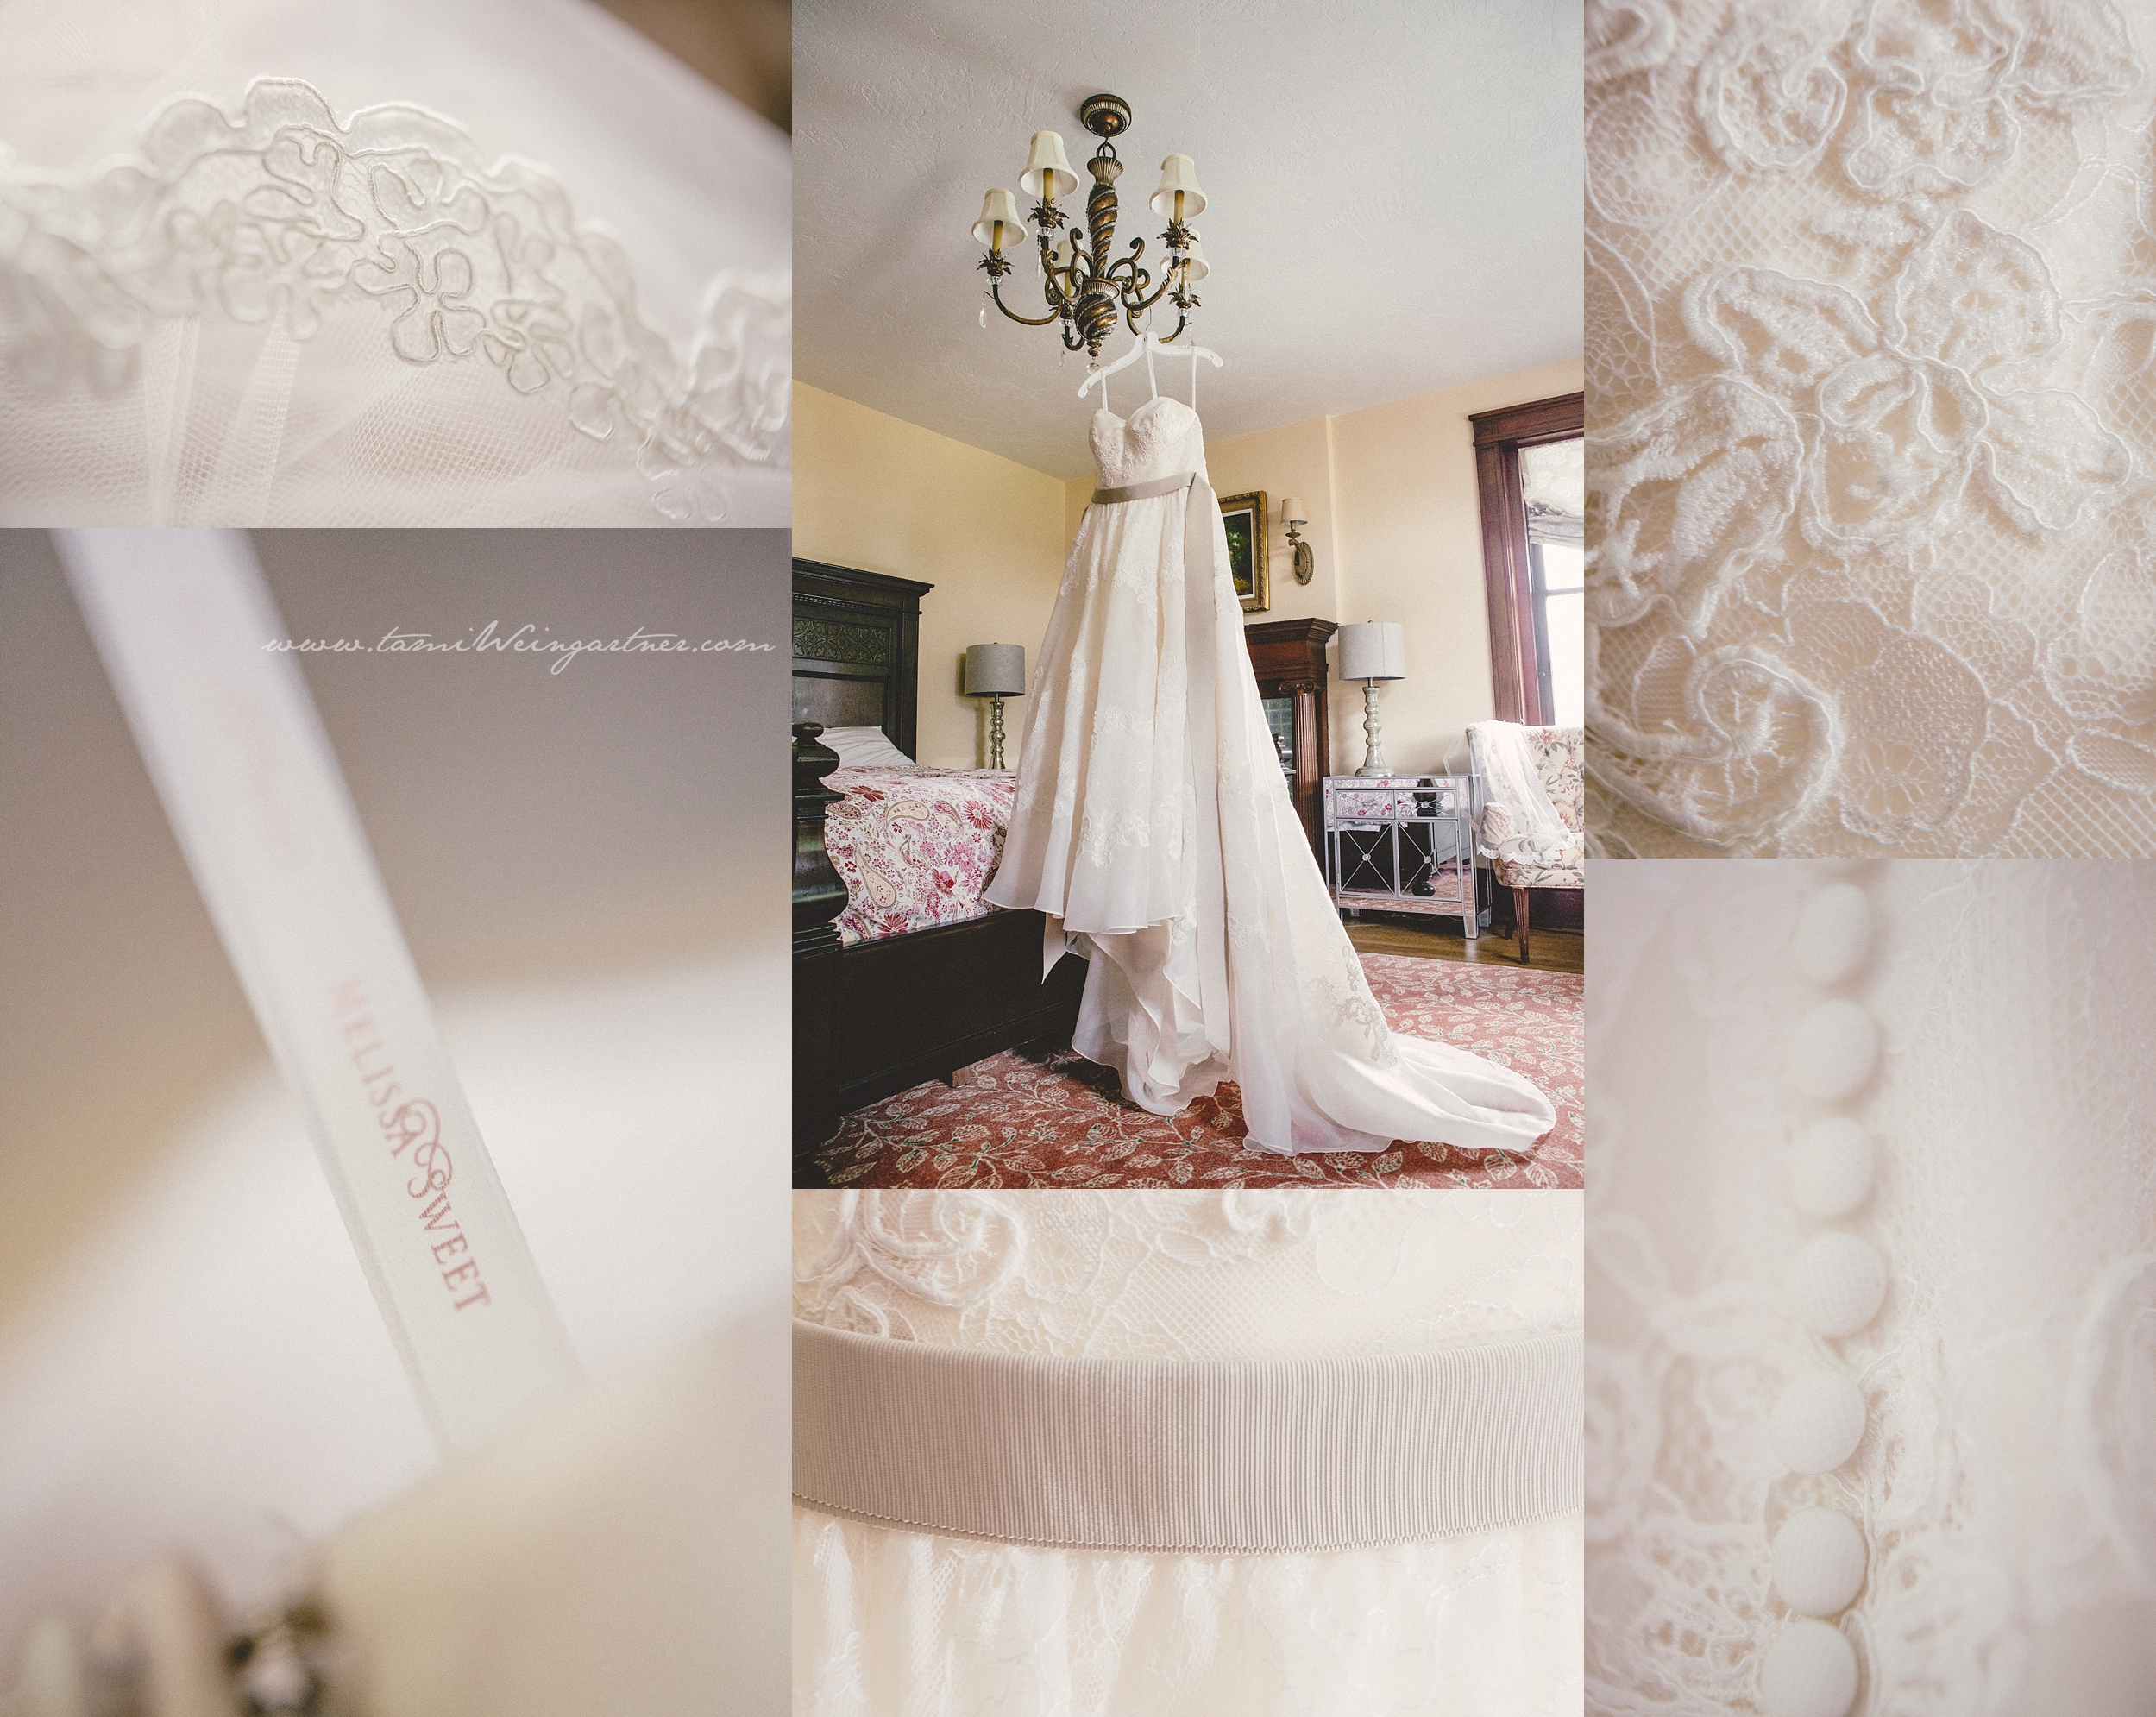 Brides gown hanging at Thistledown at Seger House